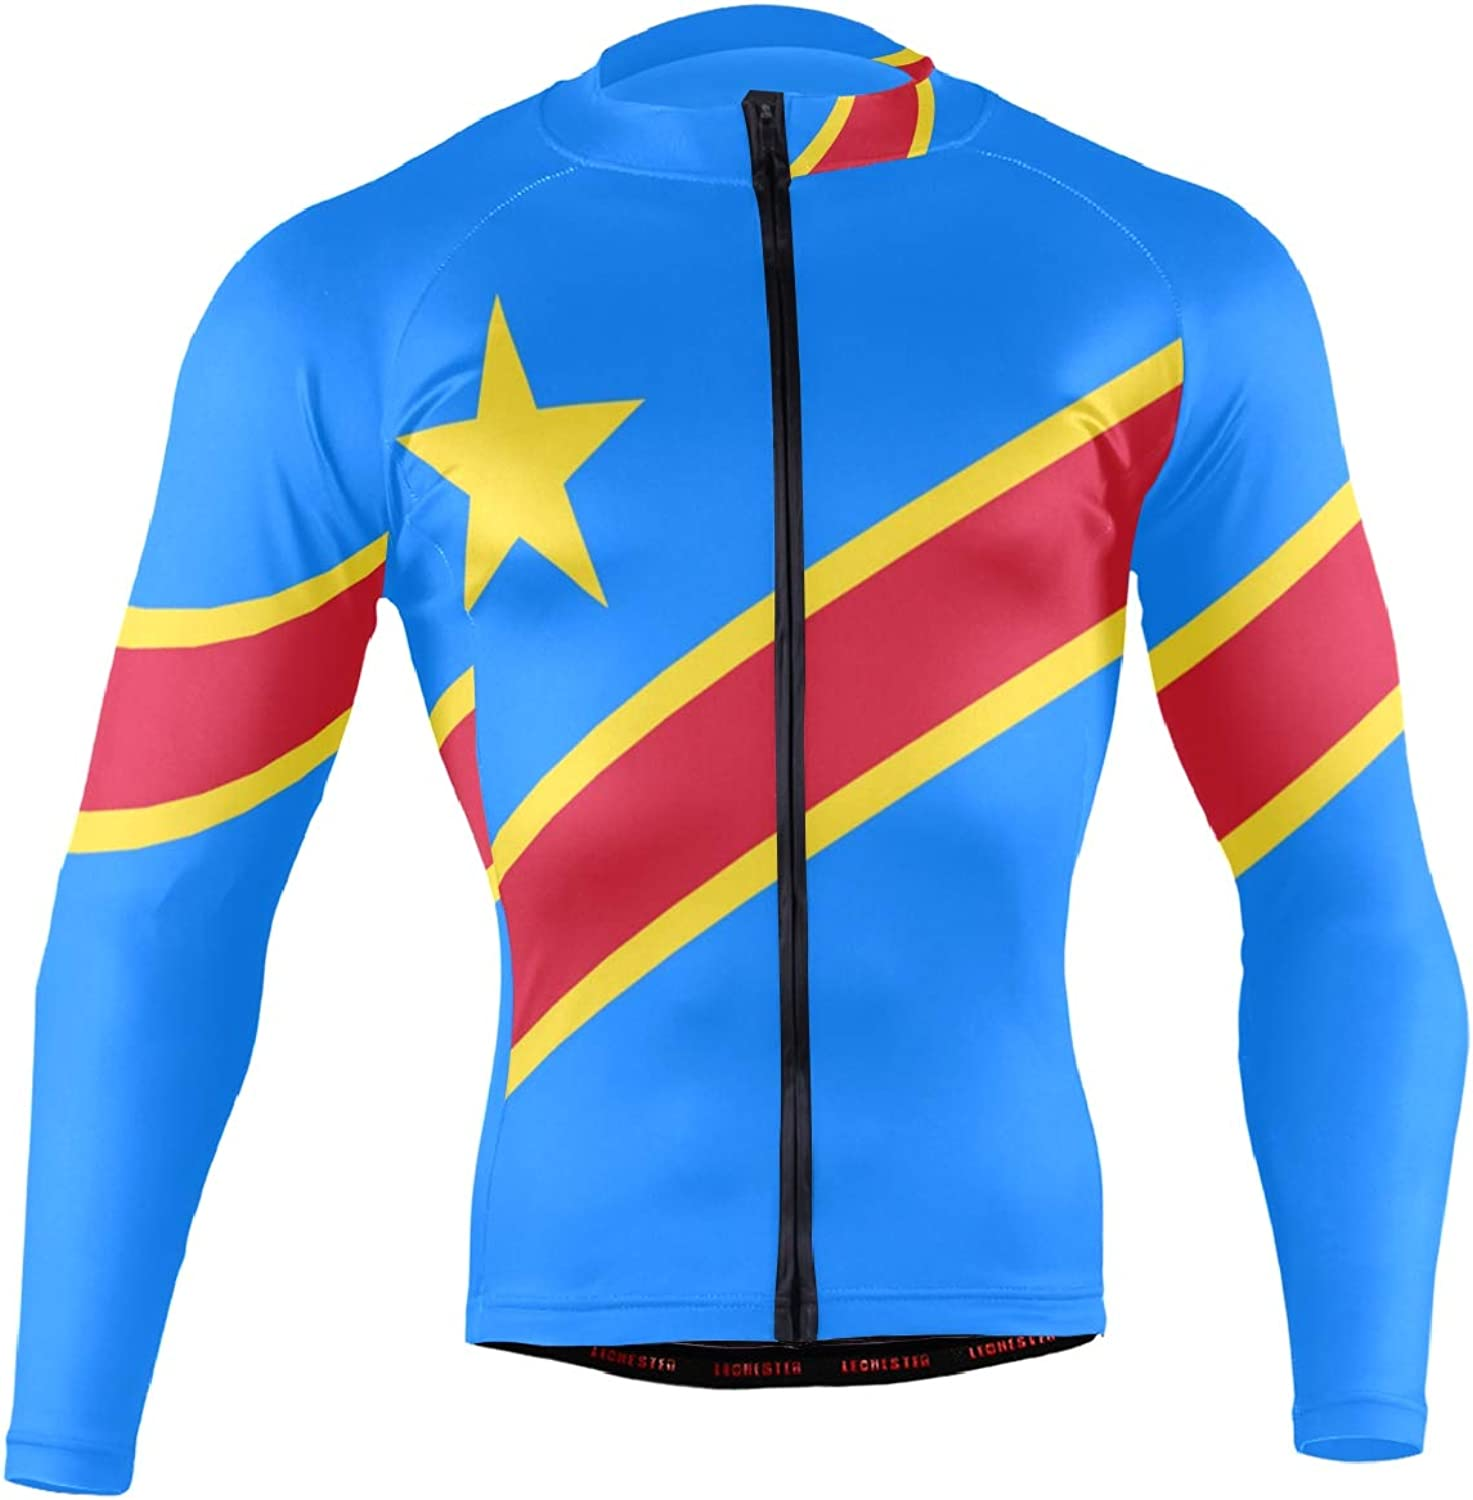 Men's Cycling Jersey Long Sleeve with 3 Rear Pockets Suit Democratic Republic of Congo Flag